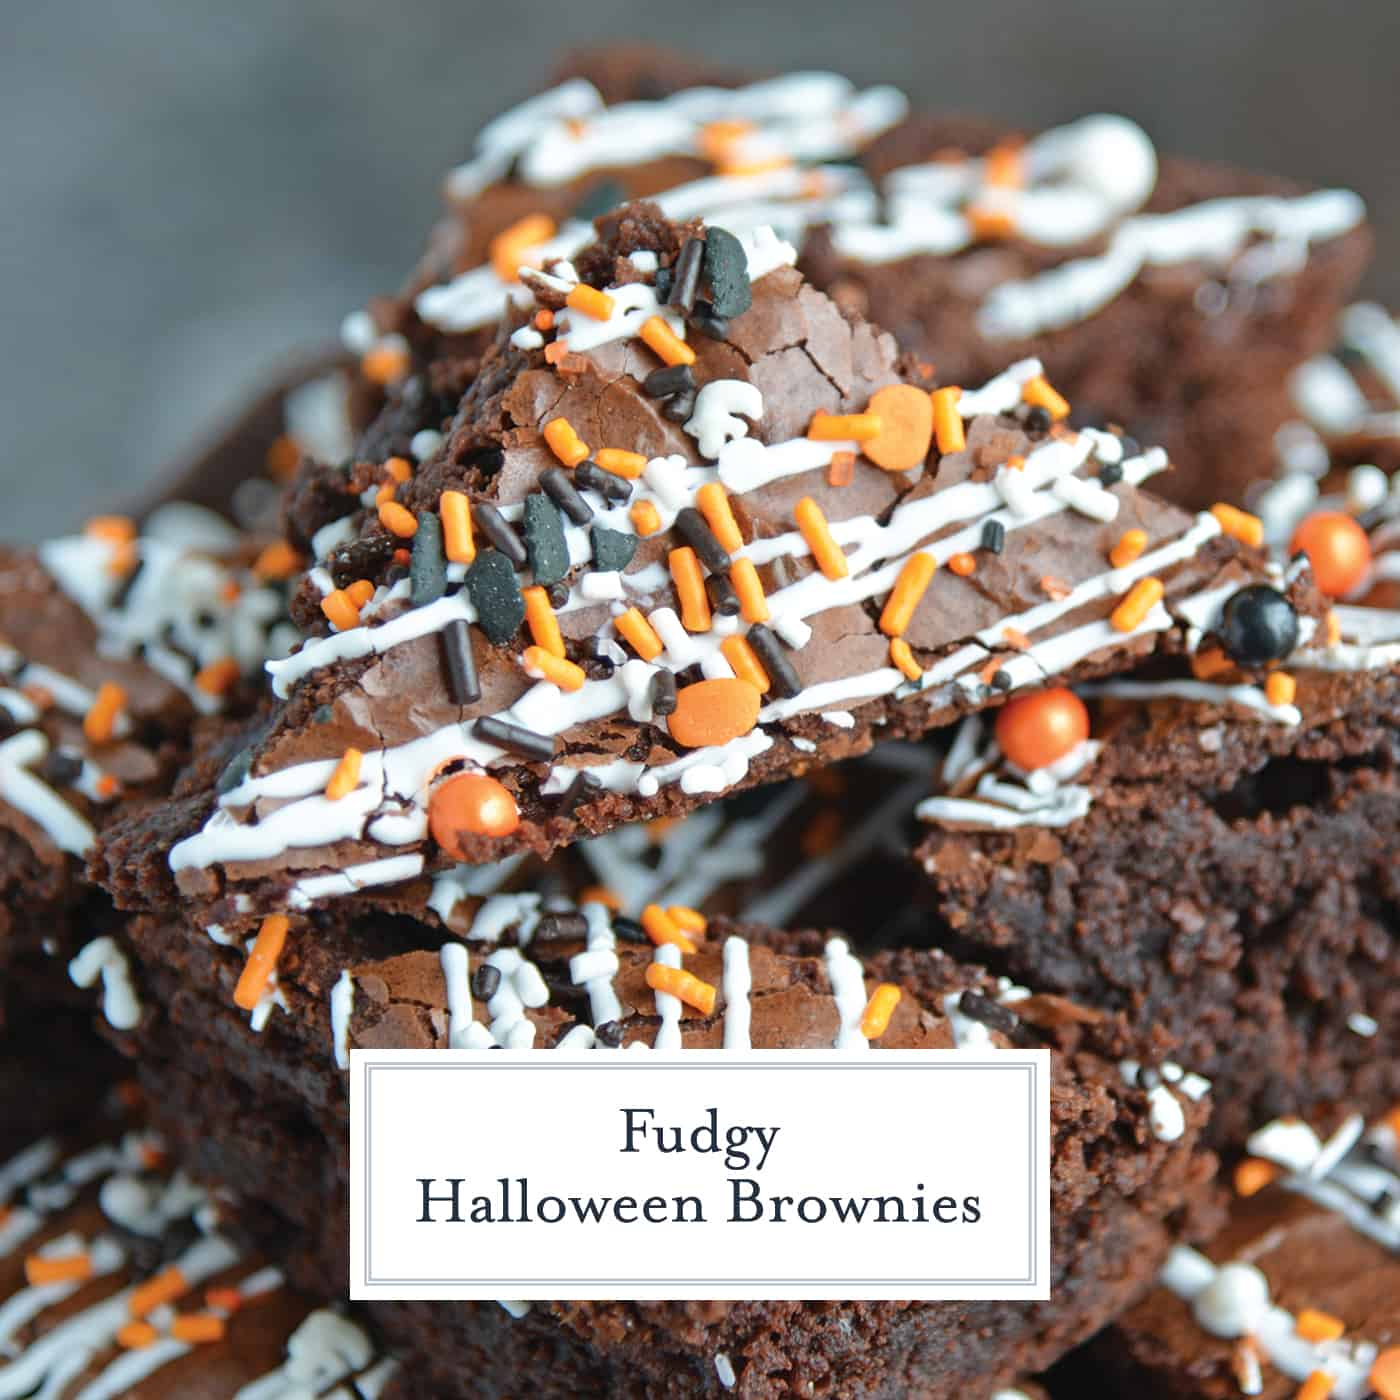 Halloween Brownies are a quick and easy Halloween themed dessert made with box brownie mix, cookie icing and sprinkles. An easy Halloween dessert! #halloweenbrownies #halloweenthemeddesserts #browniemix www.savoryexperiments.com